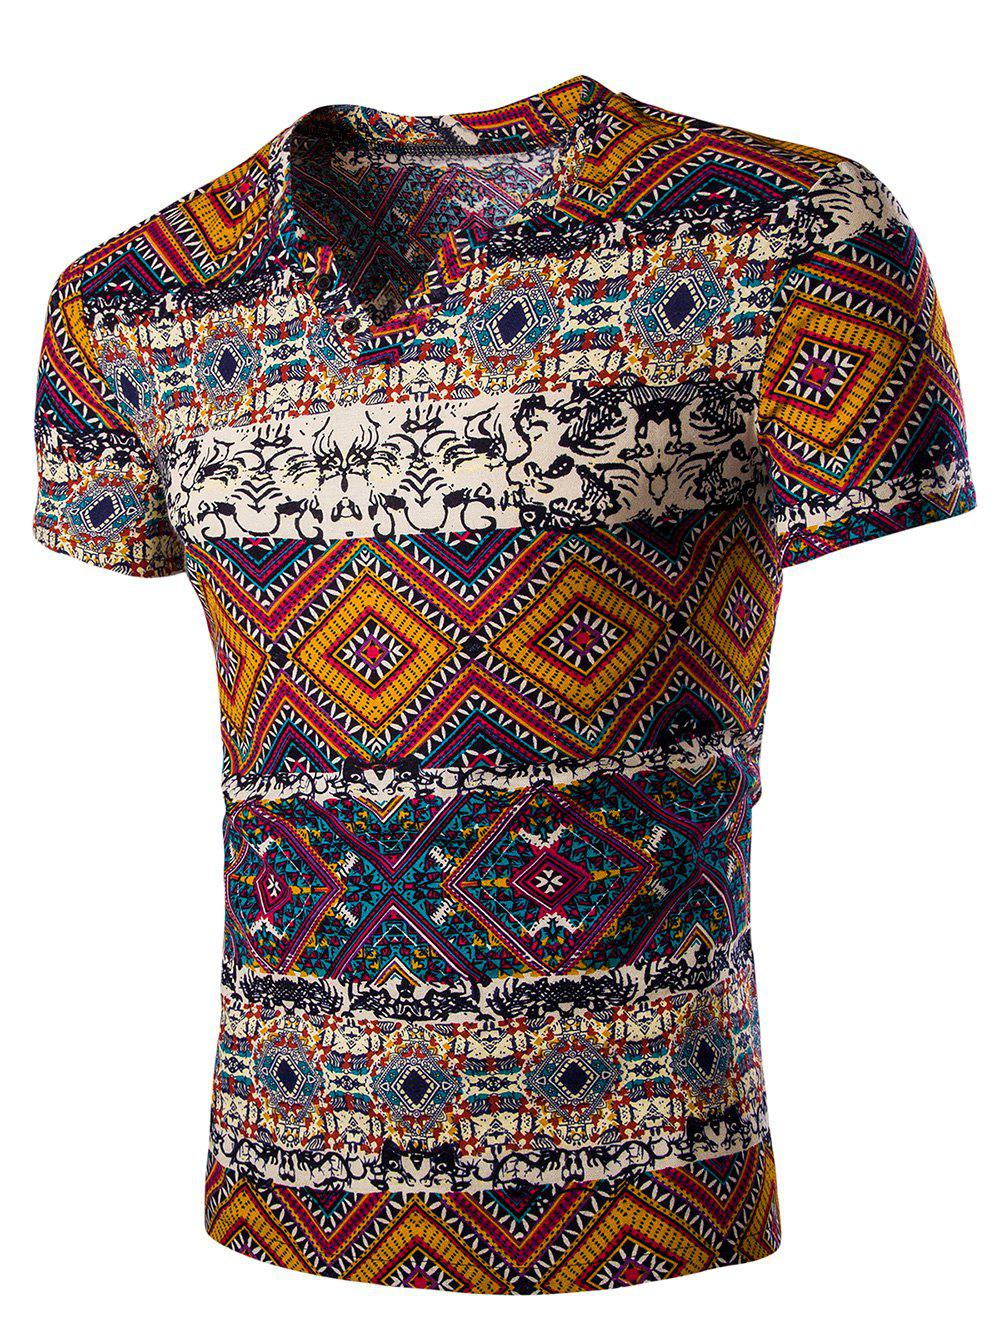 Men's Fashion V Neck Abstract Printing Short Sleeves T-Shirt - ORANGE M